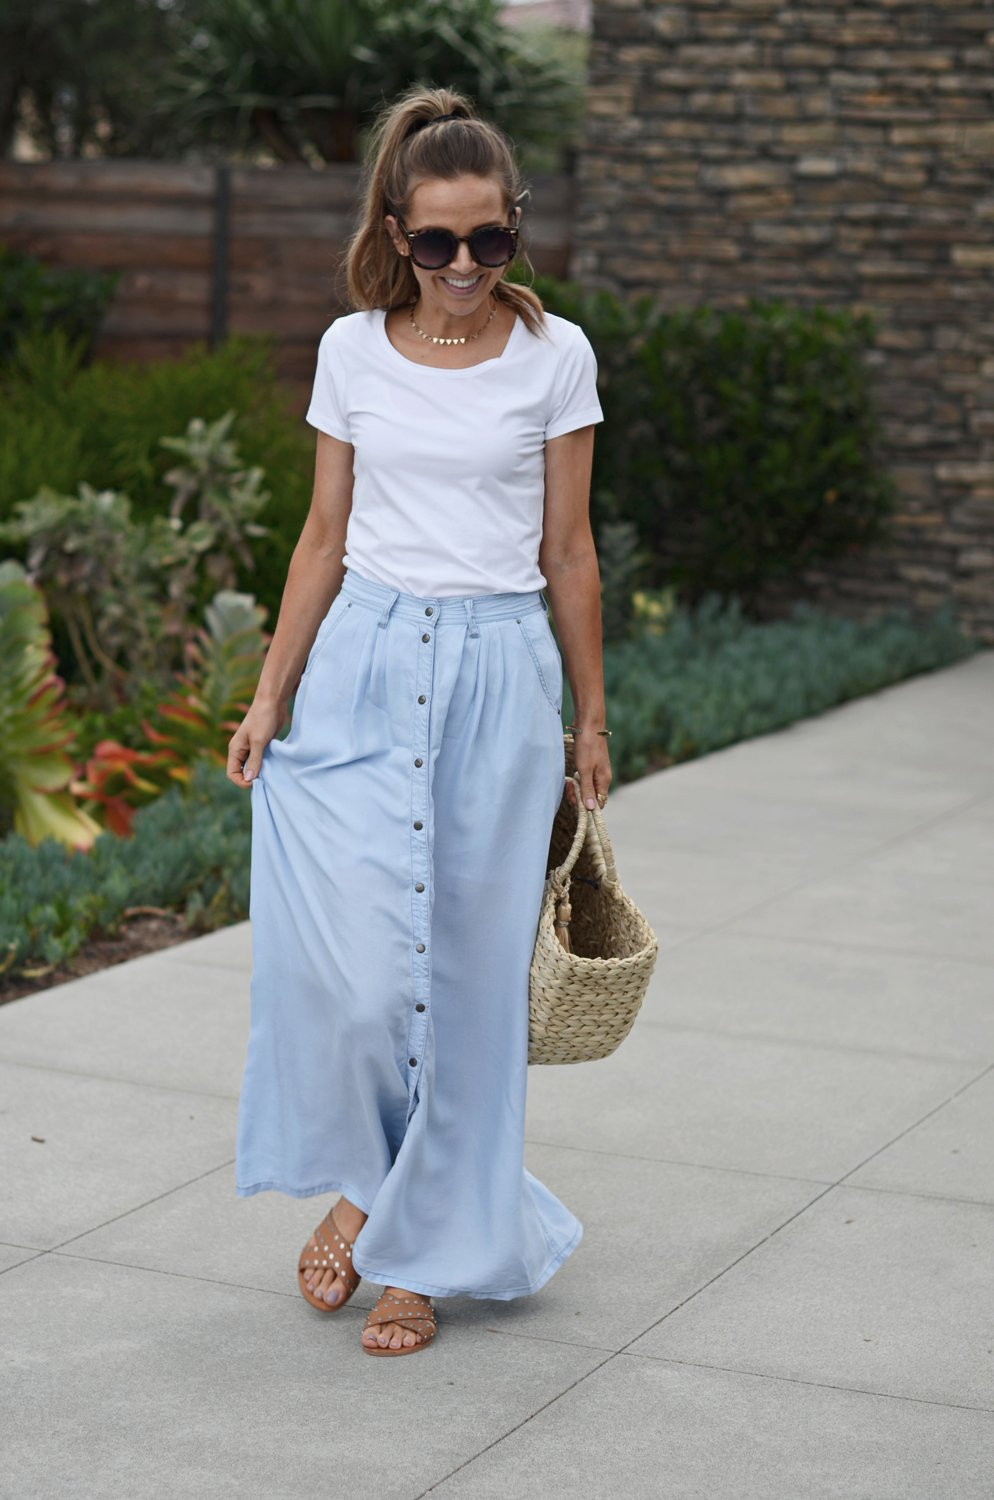 Merrick's Art Light blue chambray maxi skirt with buttons